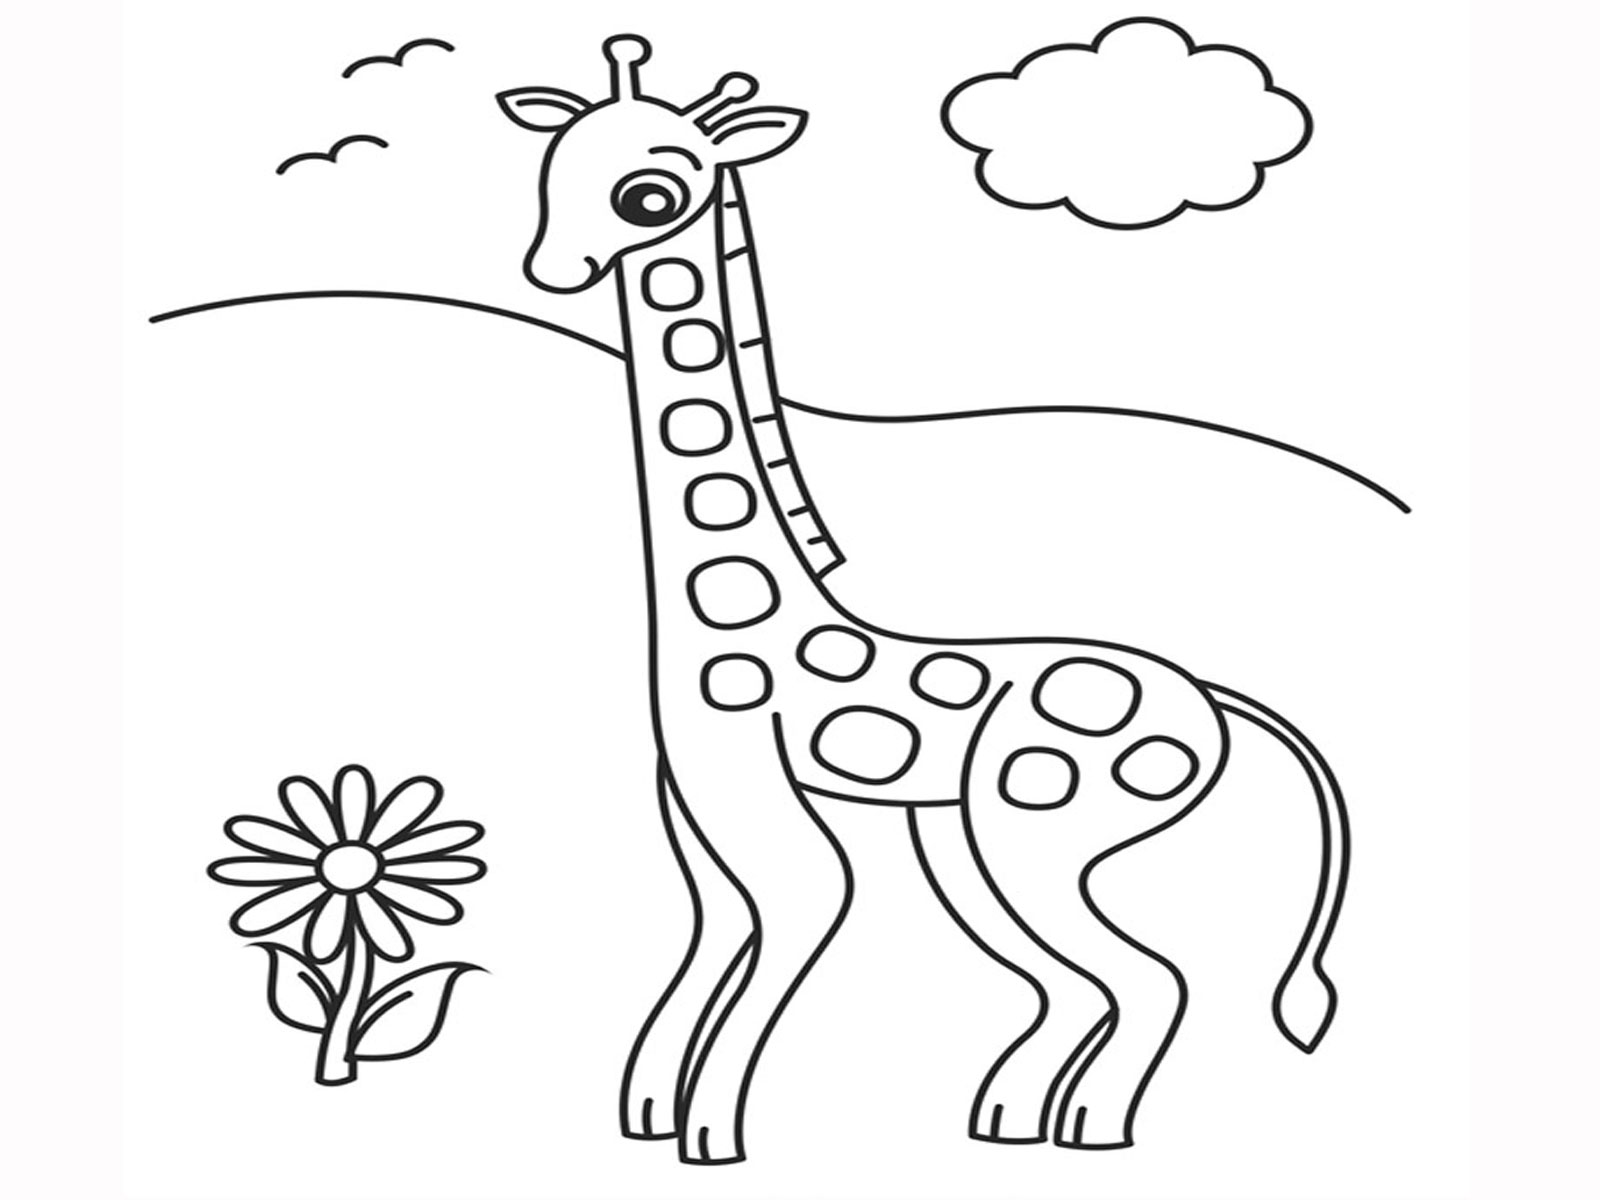 Giraffe descprition and facts for Giraffe color page